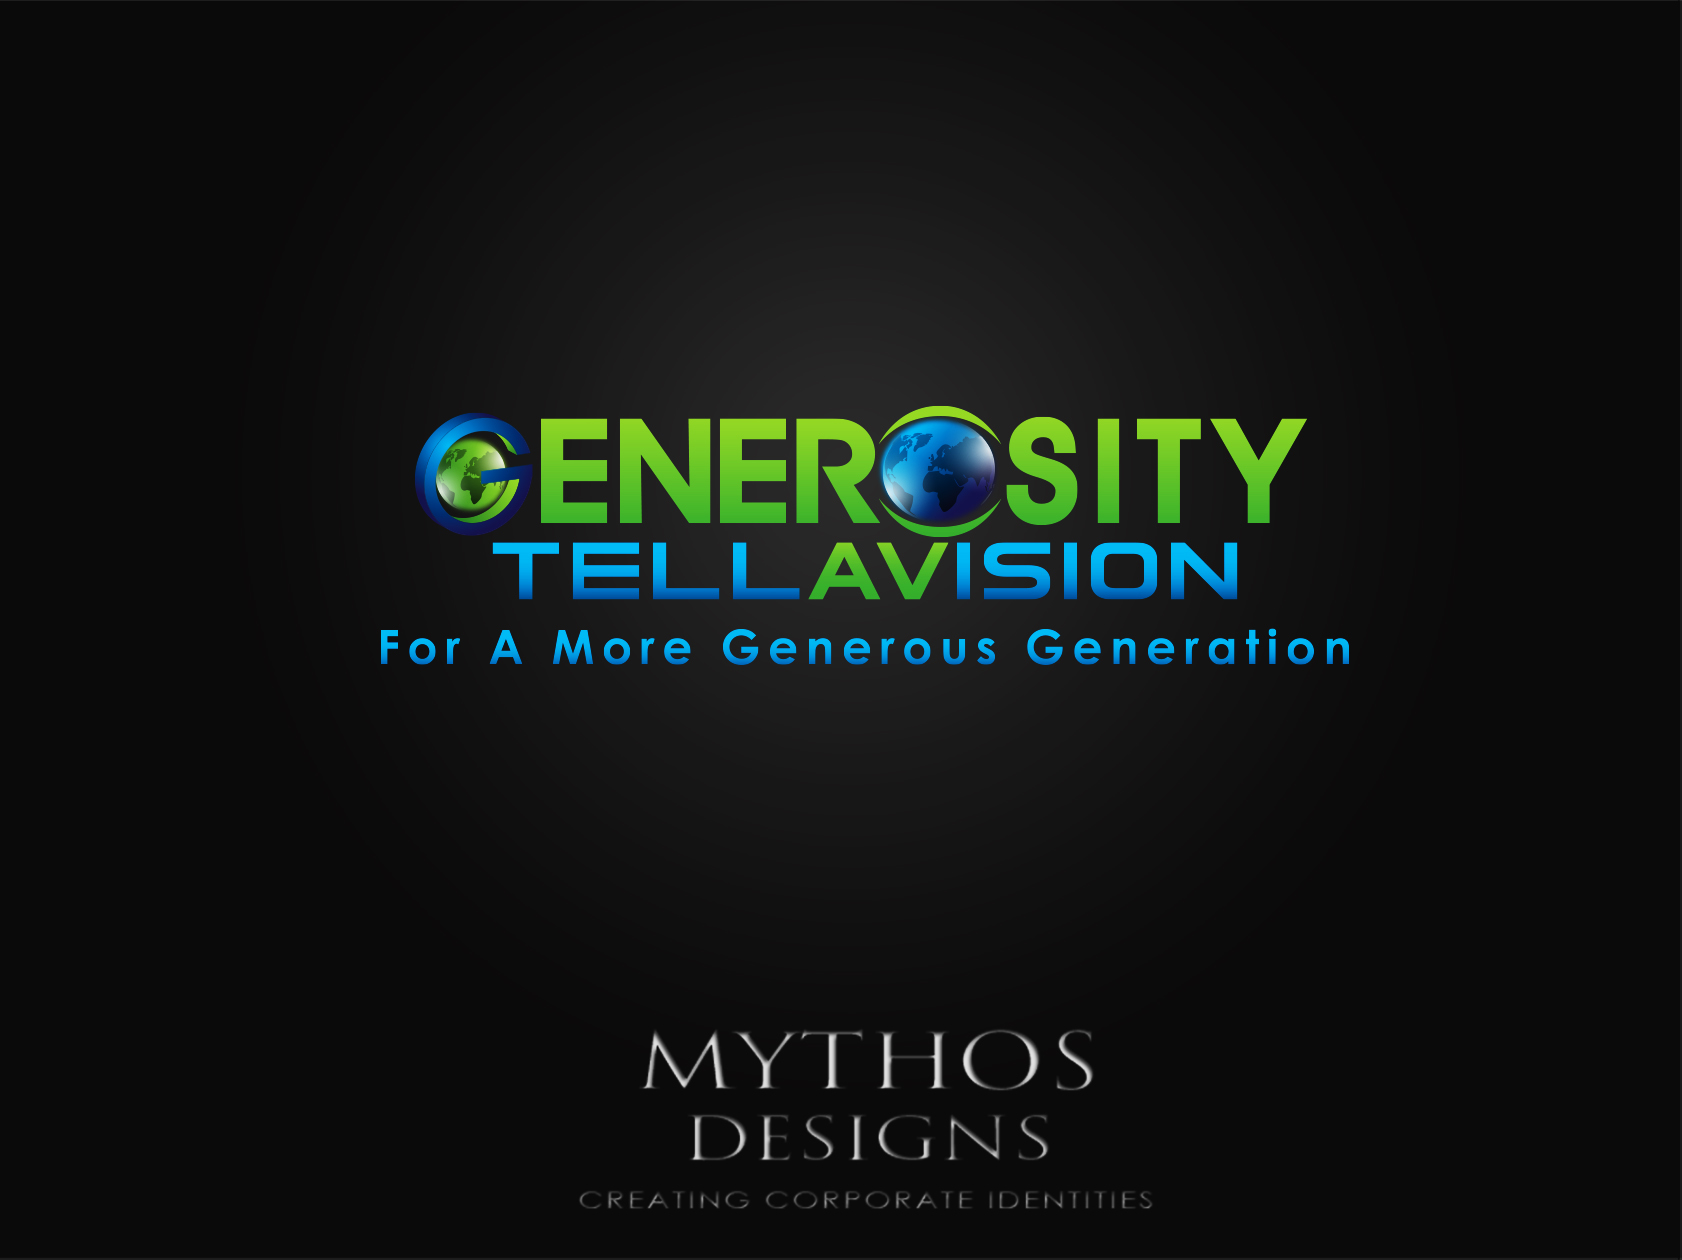 Logo Design by Mythos Designs - Entry No. 111 in the Logo Design Contest Artistic Logo Design for Generosity TellAVision.